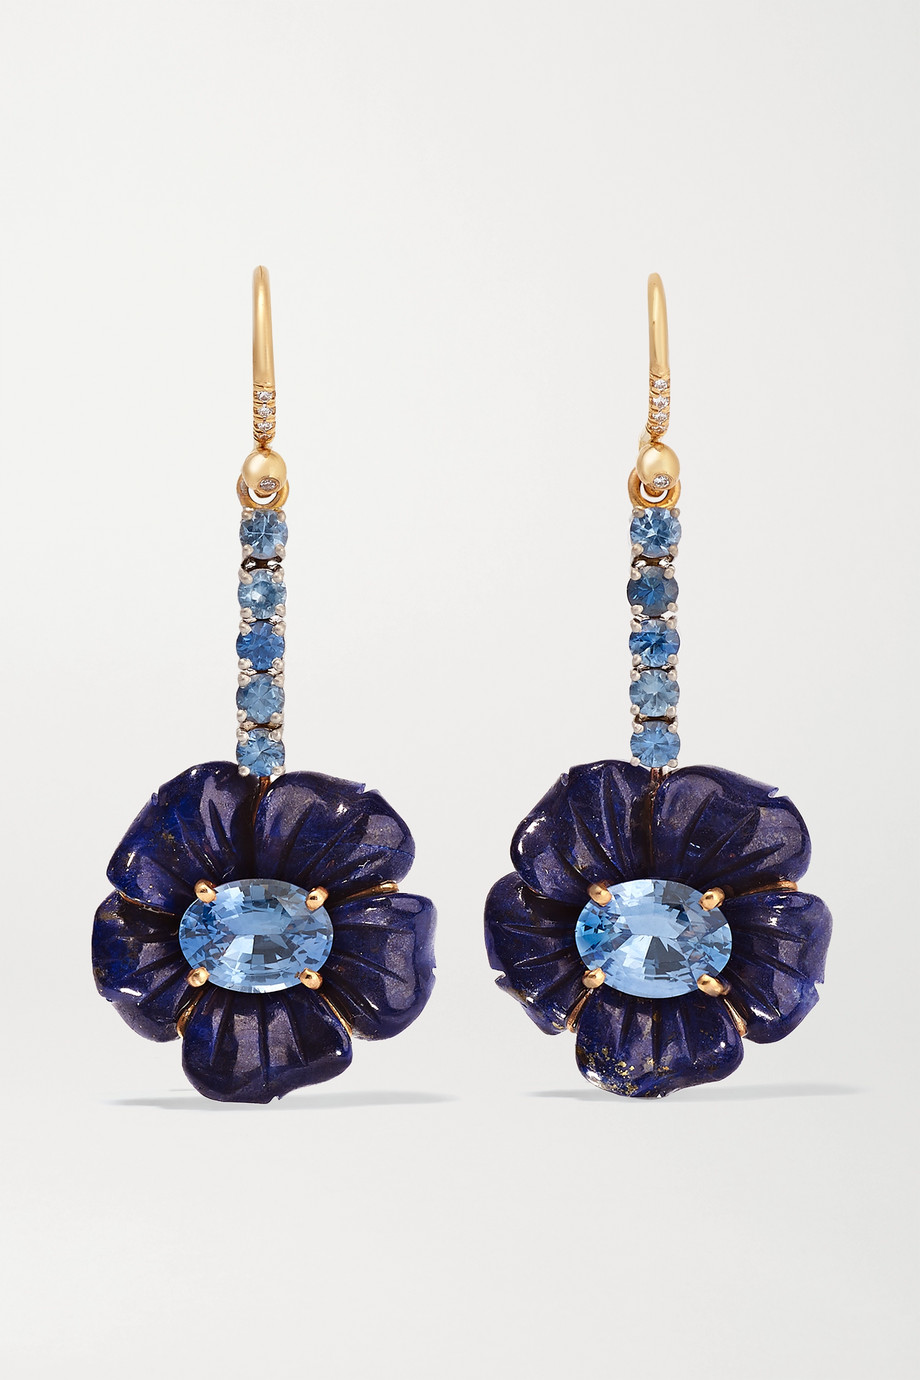 Irene Neuwirth Tropical Flower 18-karat rose and white gold, lapis lazuli, sapphire and diamond earrings